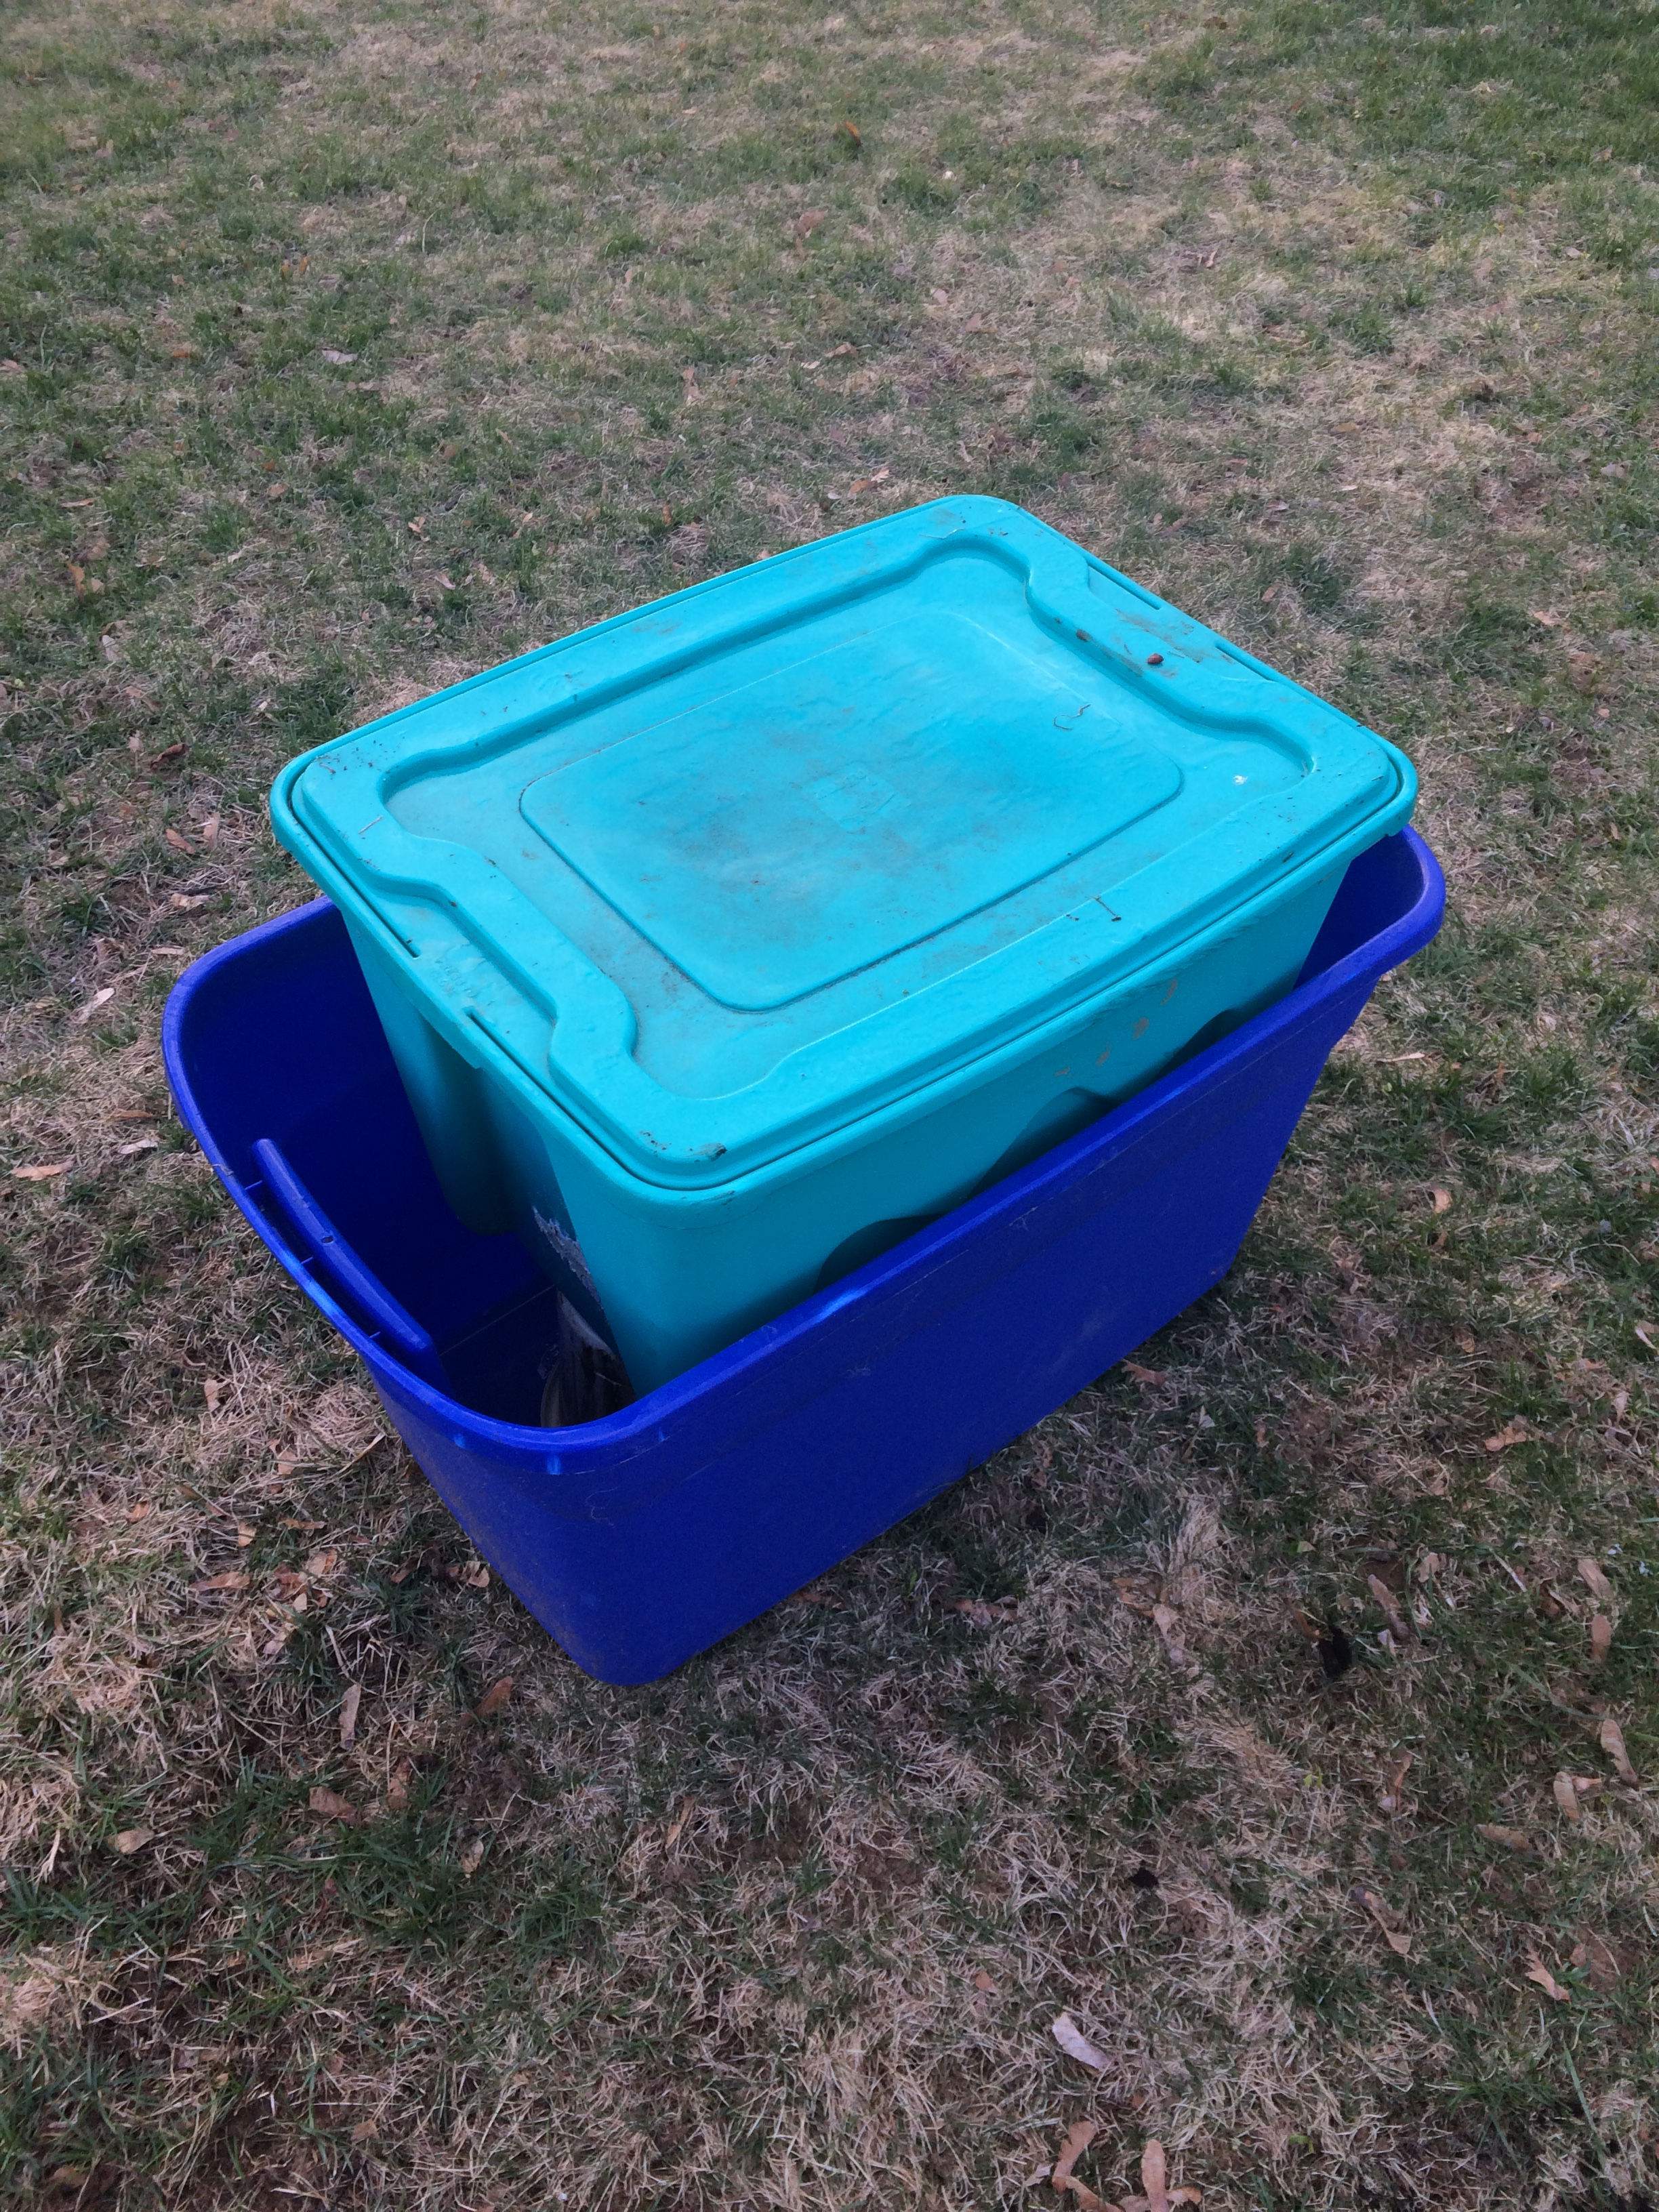 How to Make a Worm Compost Bin at Home in 8 Easy Steps | A CoLoRfUl ...